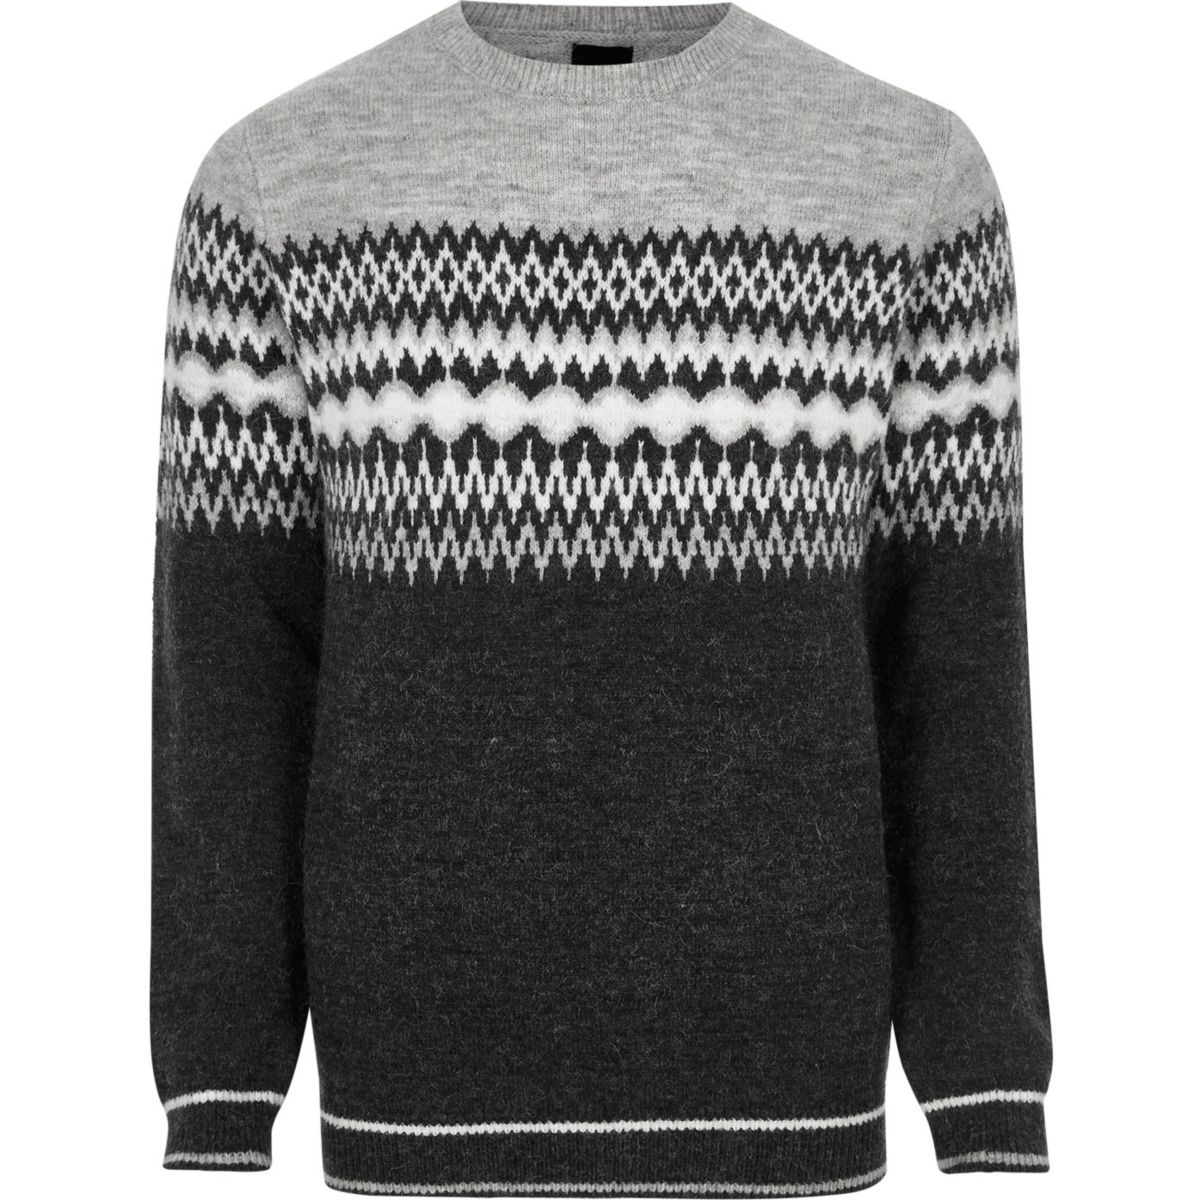 Grey Fairisle block knit Christmas jumper